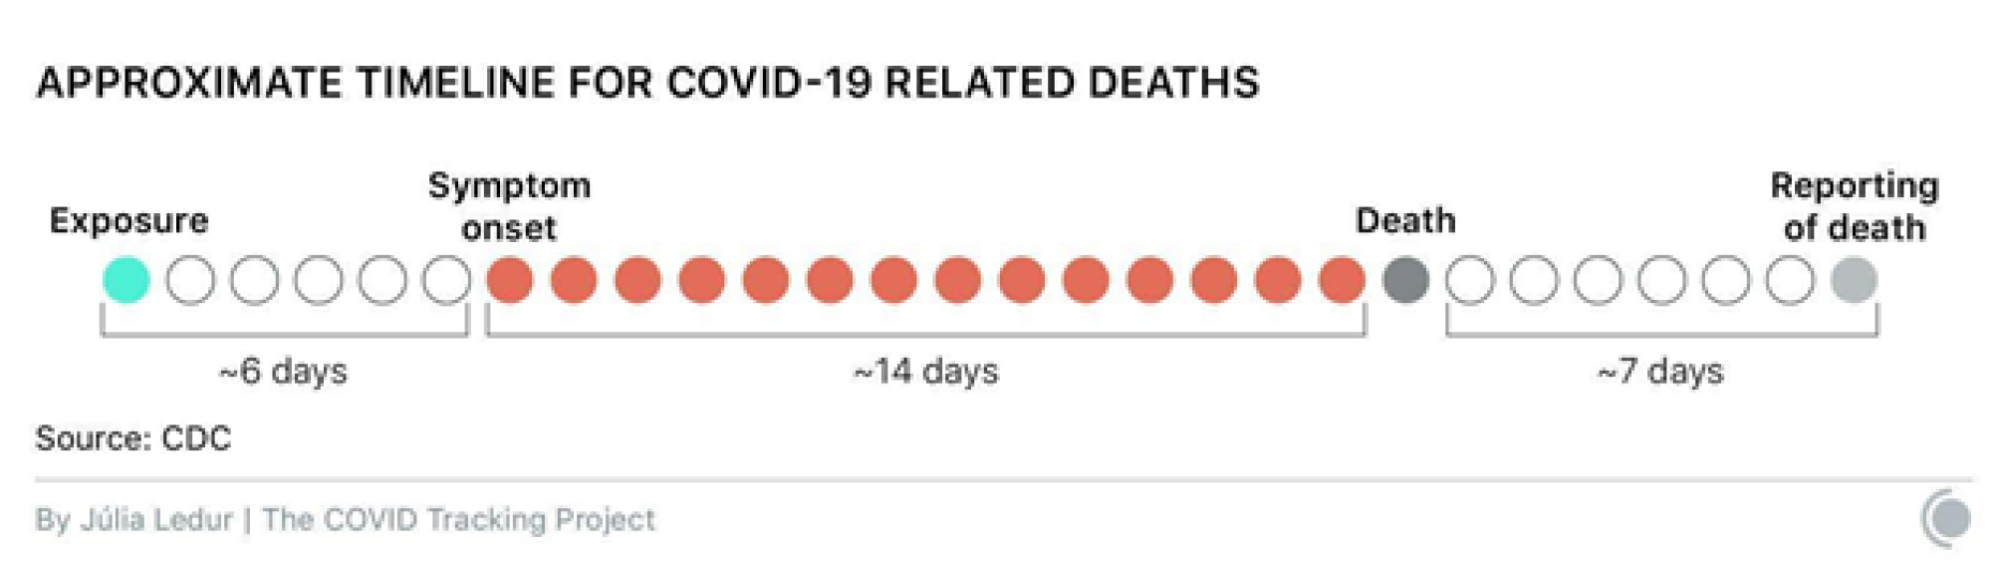 A graphic showing the timeline of an average COVID-19 disease progression. Symptoms follow exposure by about 6 days, death follows symptoms by about 14 days, and reporting of deaths follow afterward by 7 days.